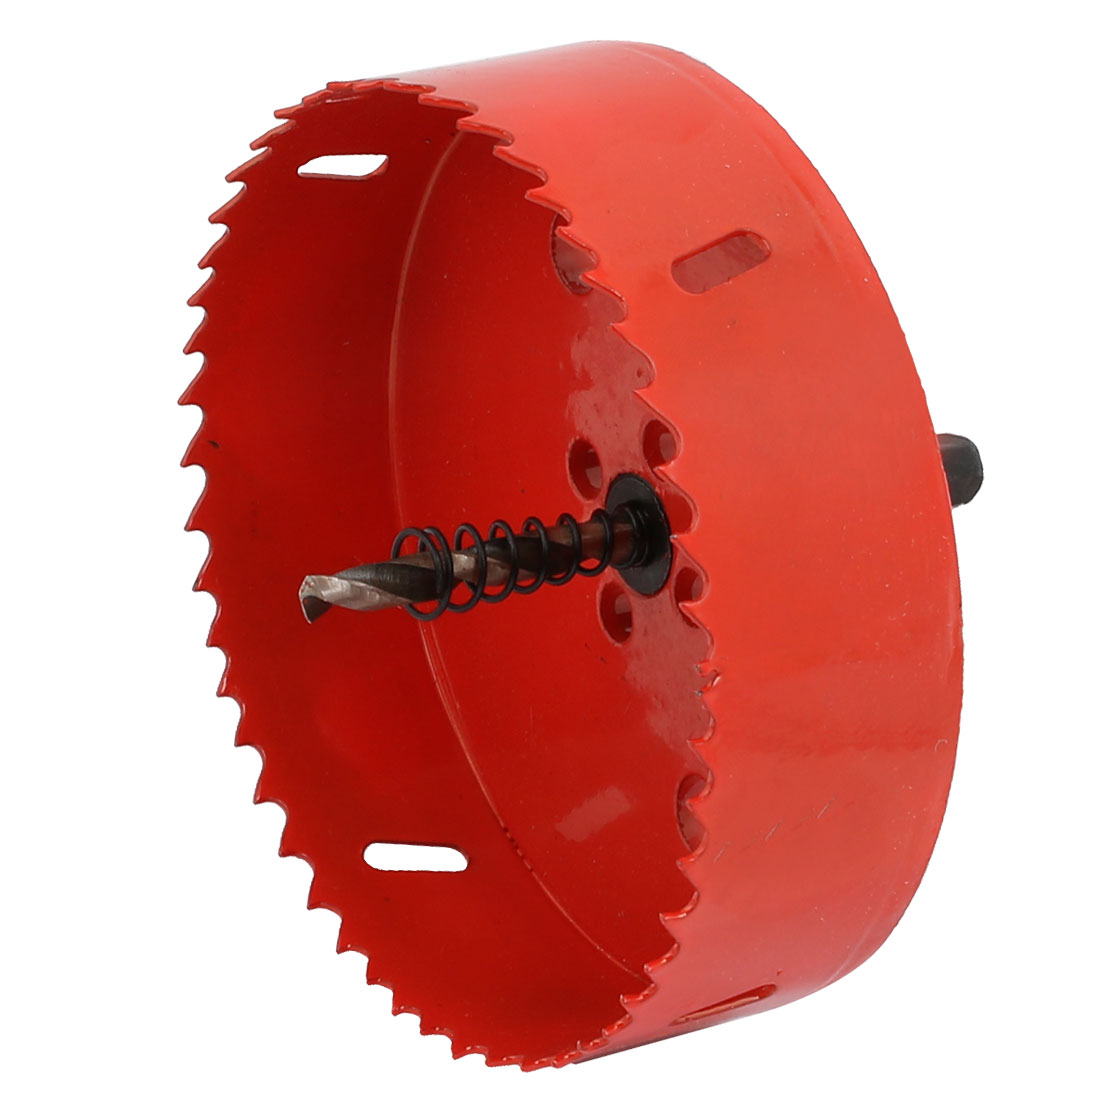 120mm Diameter Bimetal Hole Cutter Cutting Holesaw Red